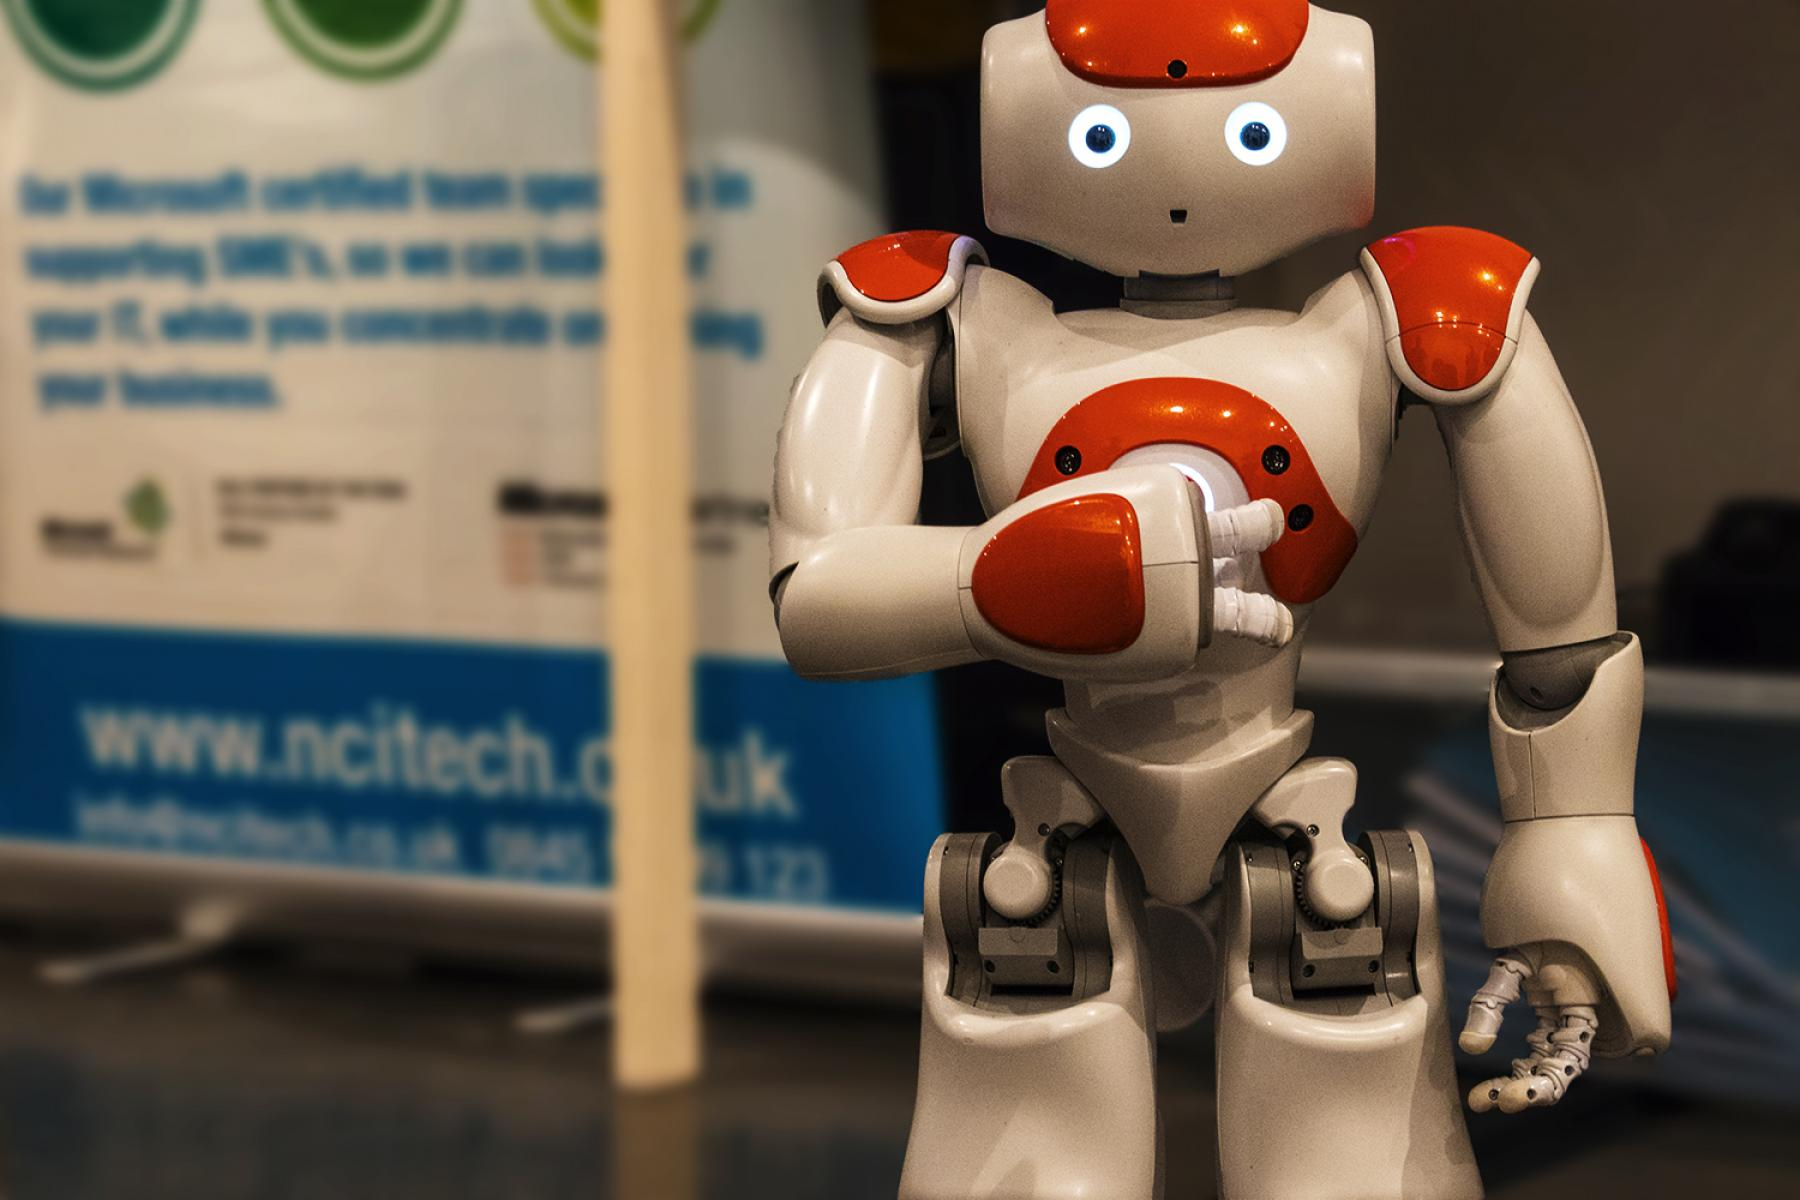 Toby the educational robot, courtesy of NCI Technologies